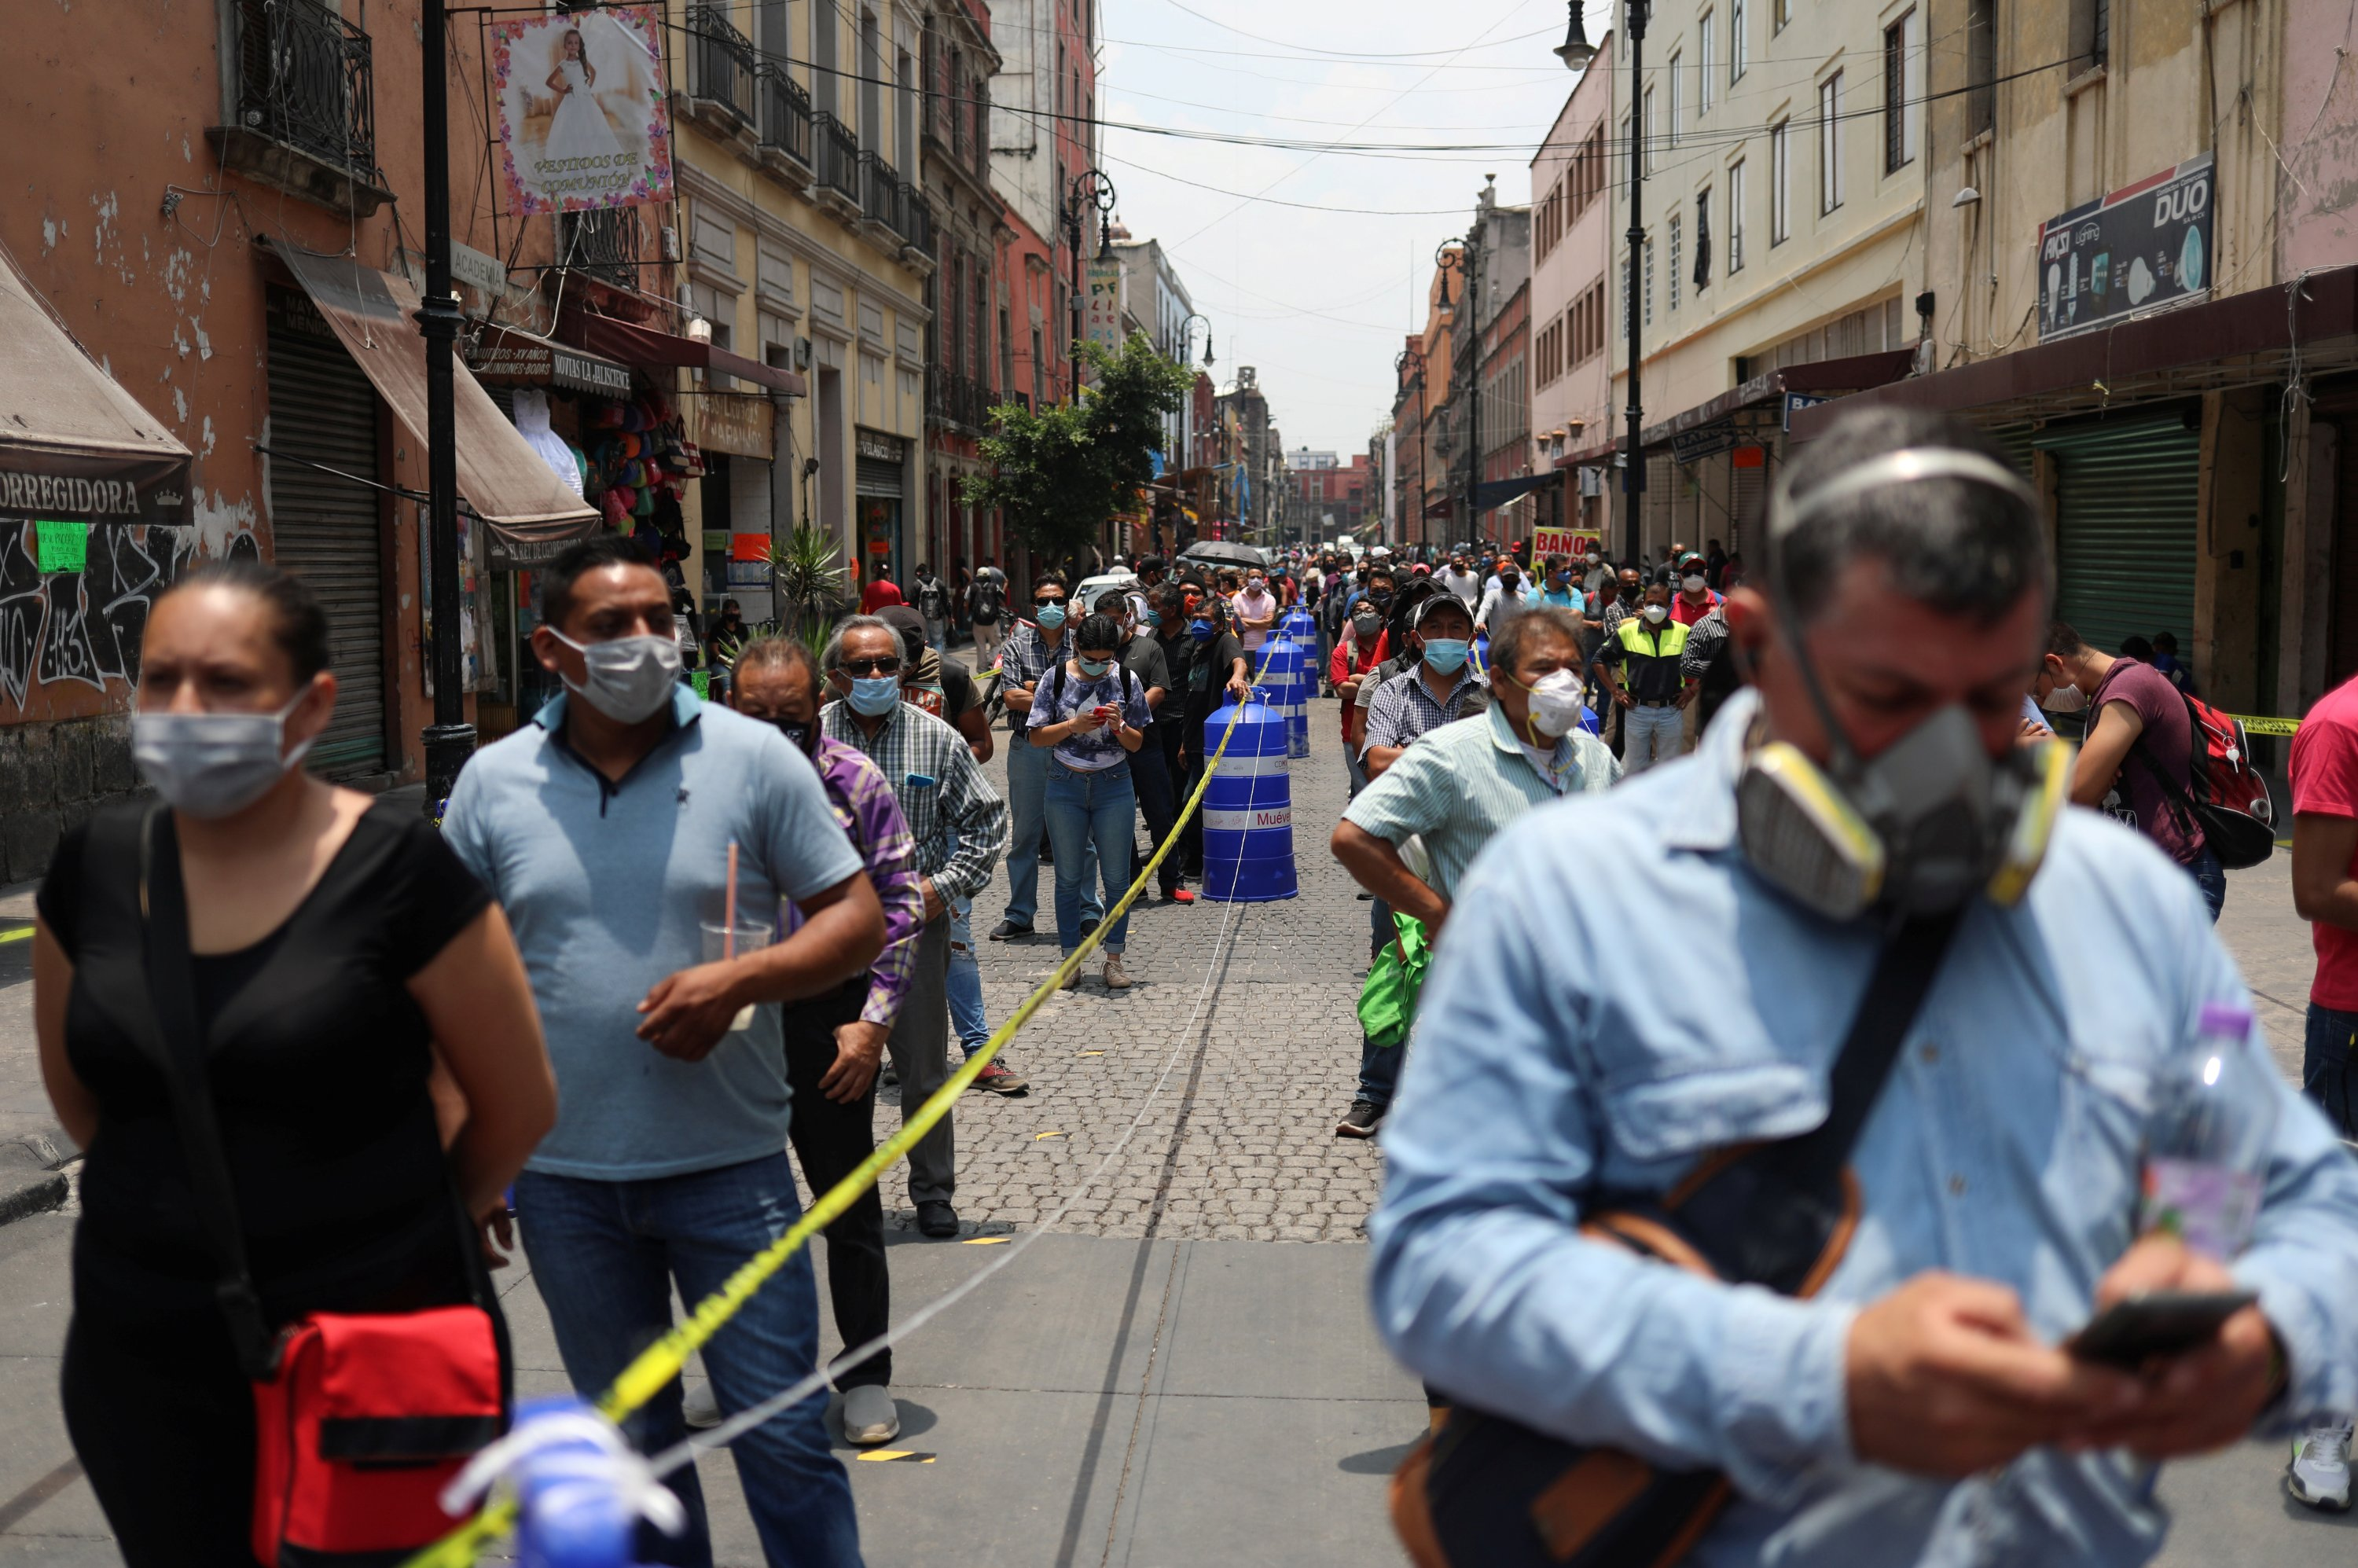 People wait in line during the gradual reopening of commercial activity in Mexico City, Mexico, July 6, 2020. (REUTERS Photo)